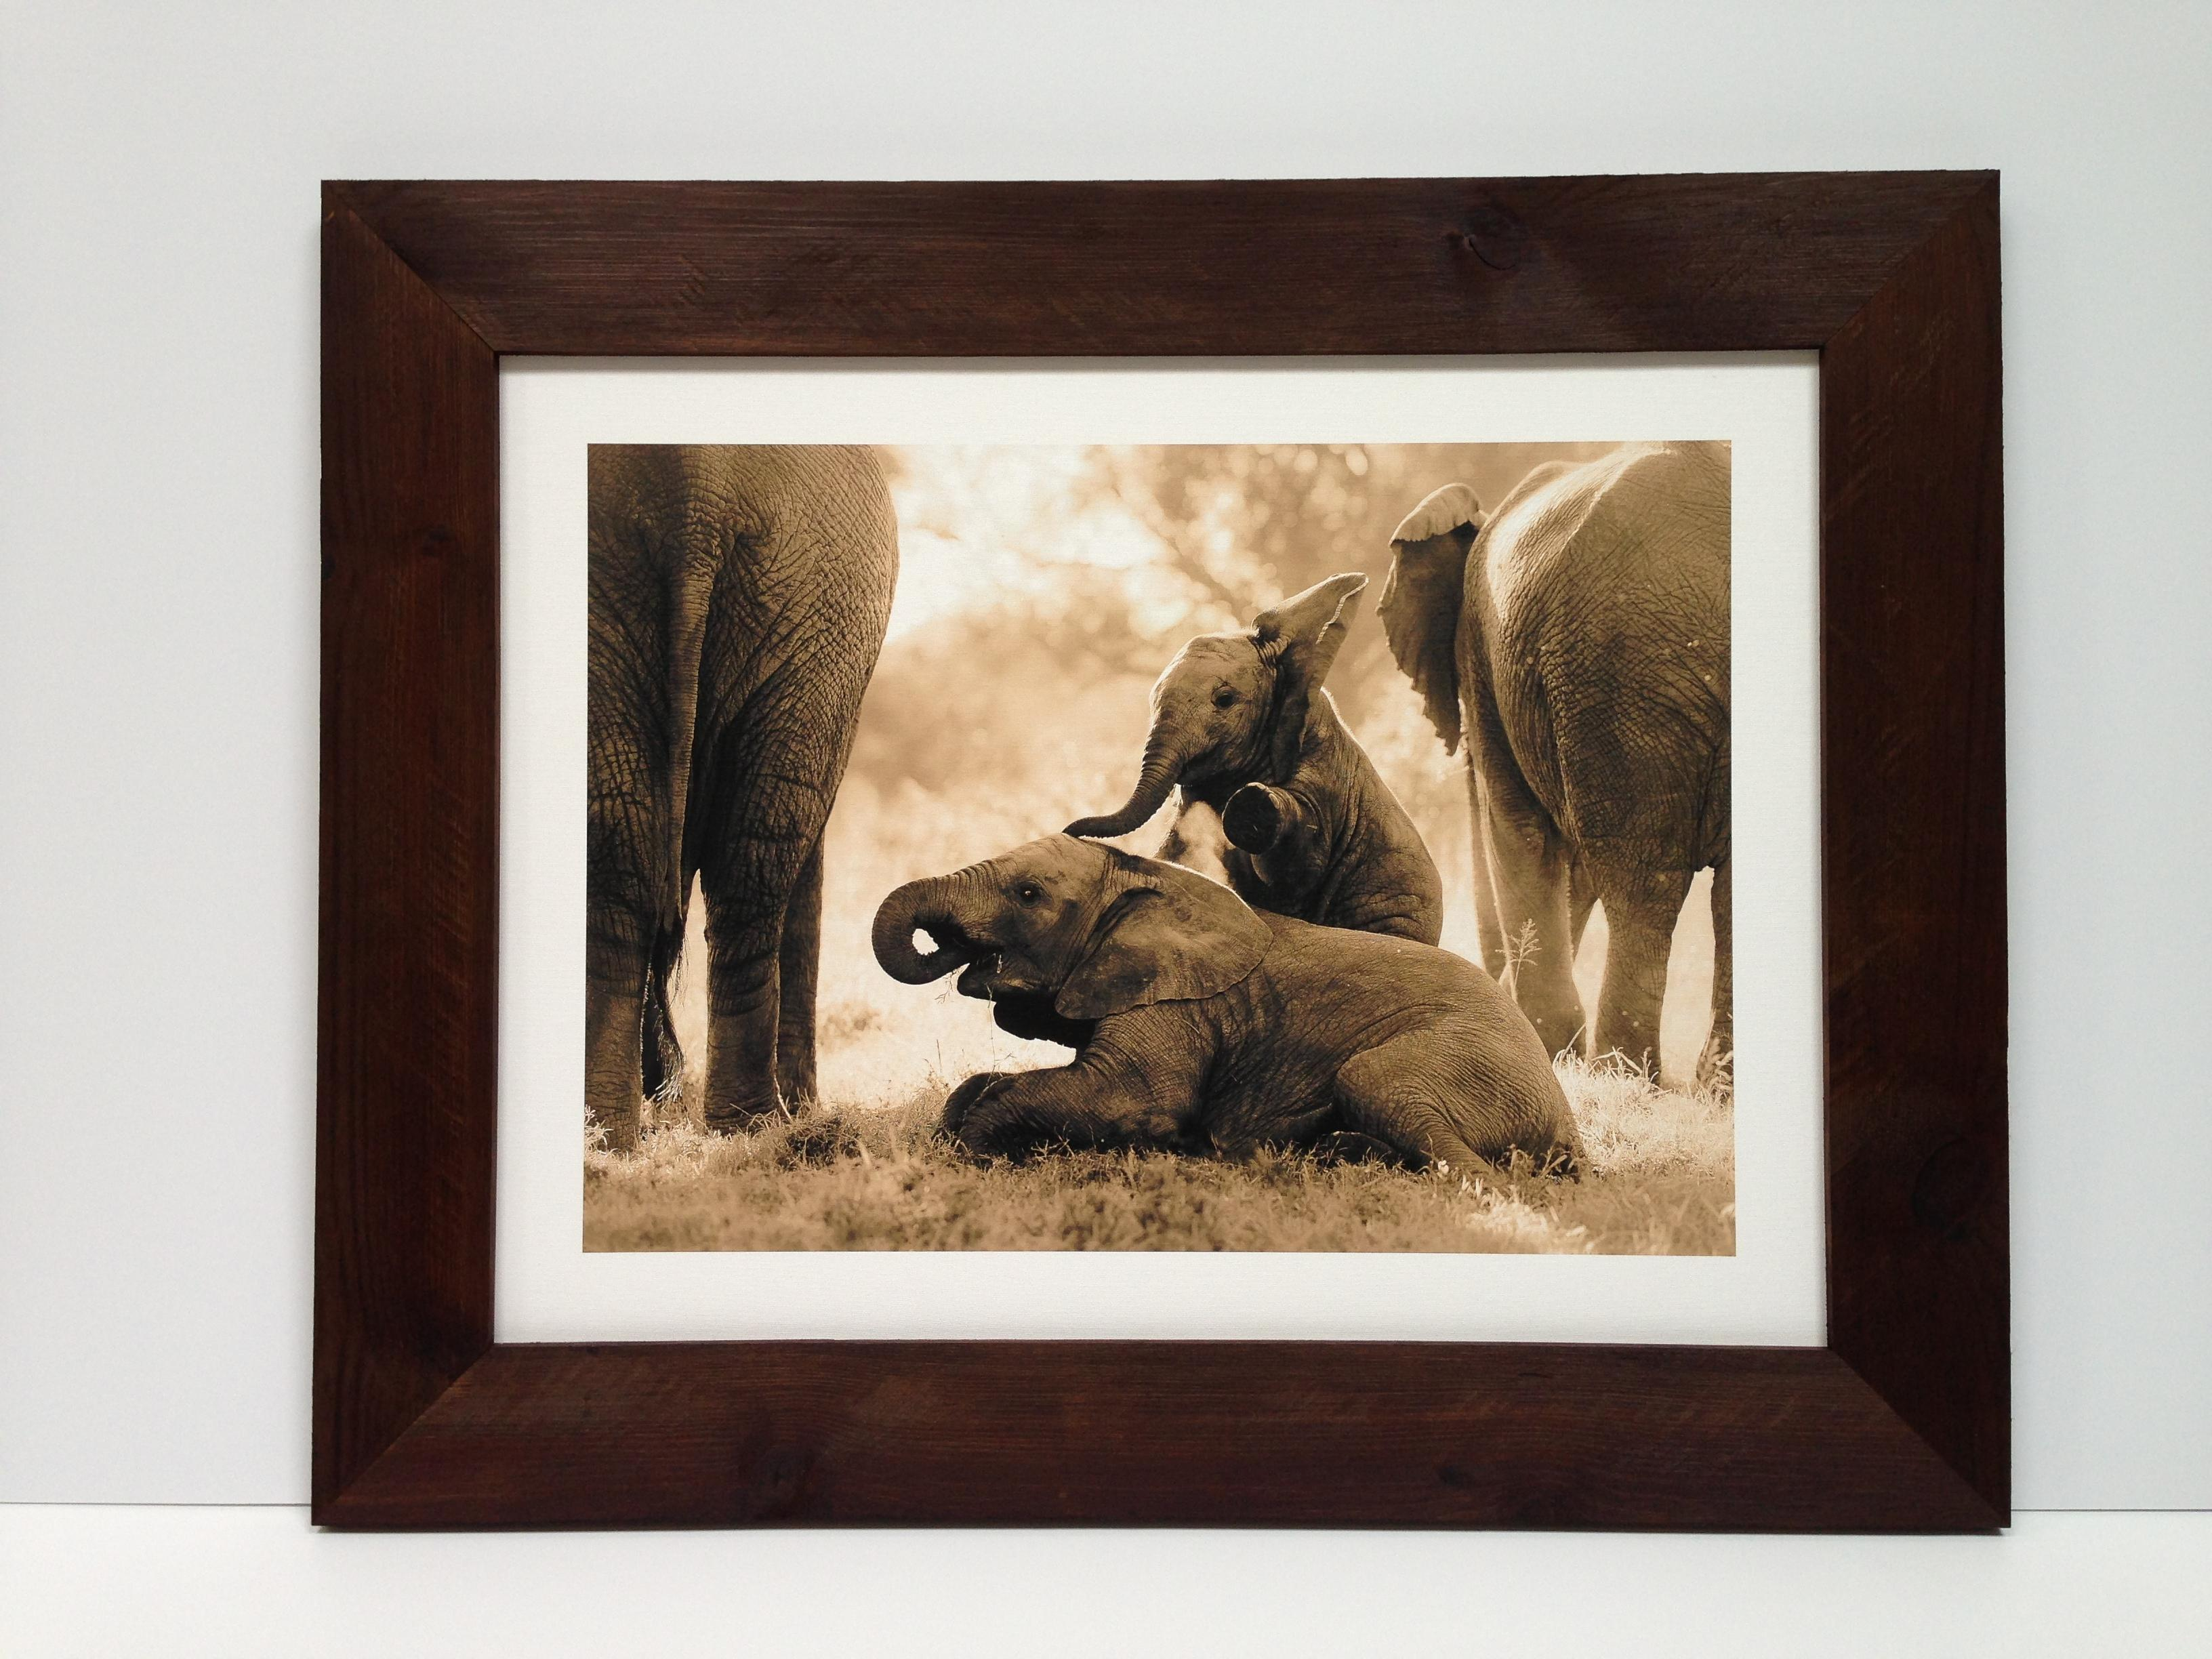 Elephant print framed in handmade and stained rough wood frame